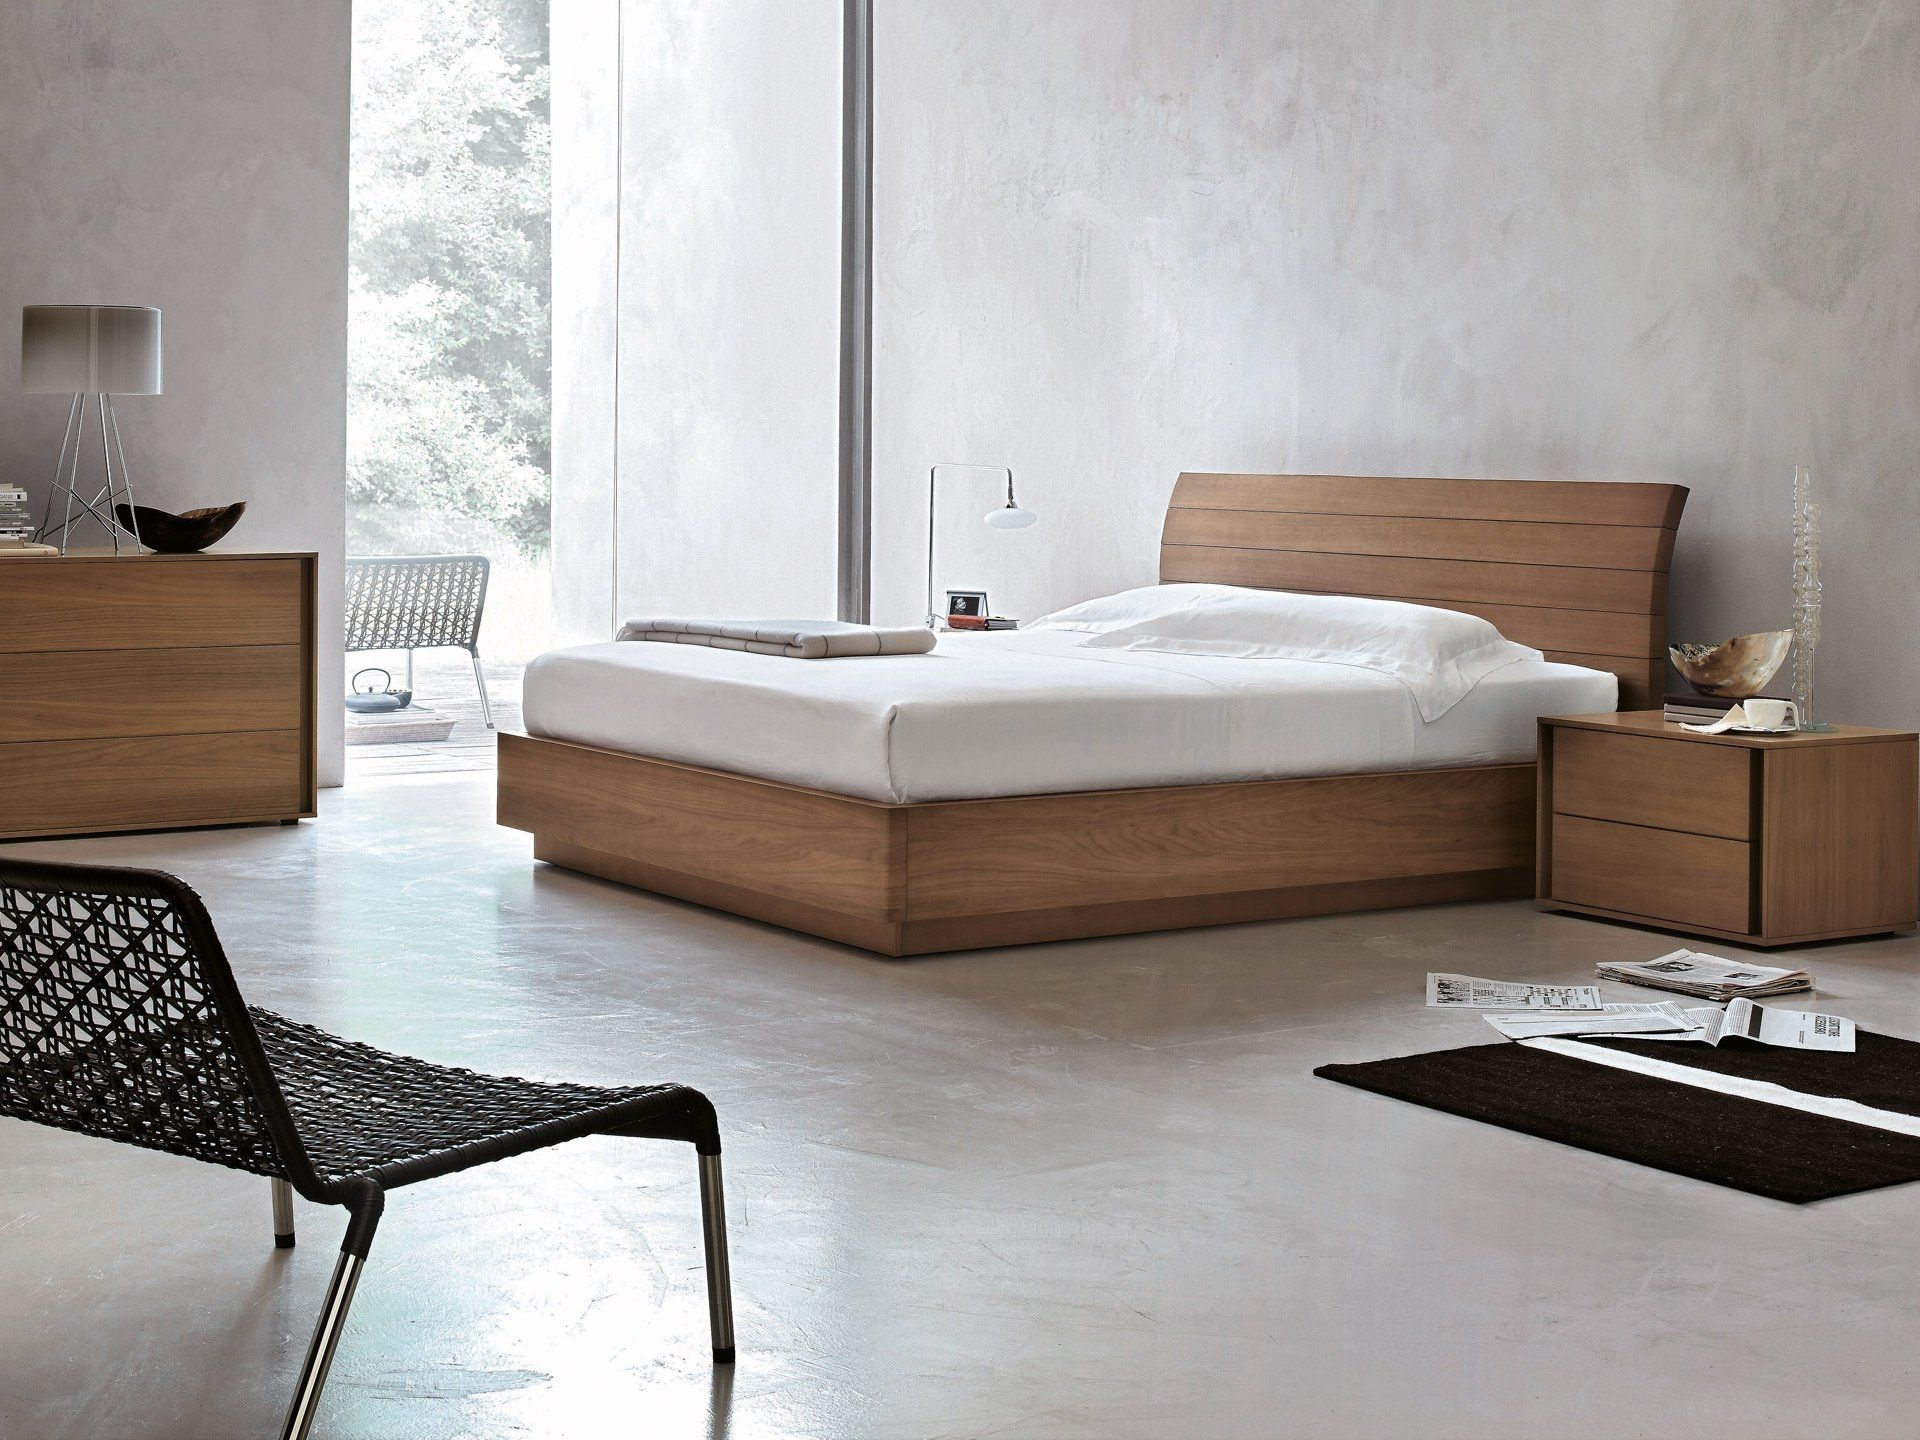 Double bed furniture design - Double Bed Designs In Wood 10 Modern Diy Art Designs Modern Wood Beds